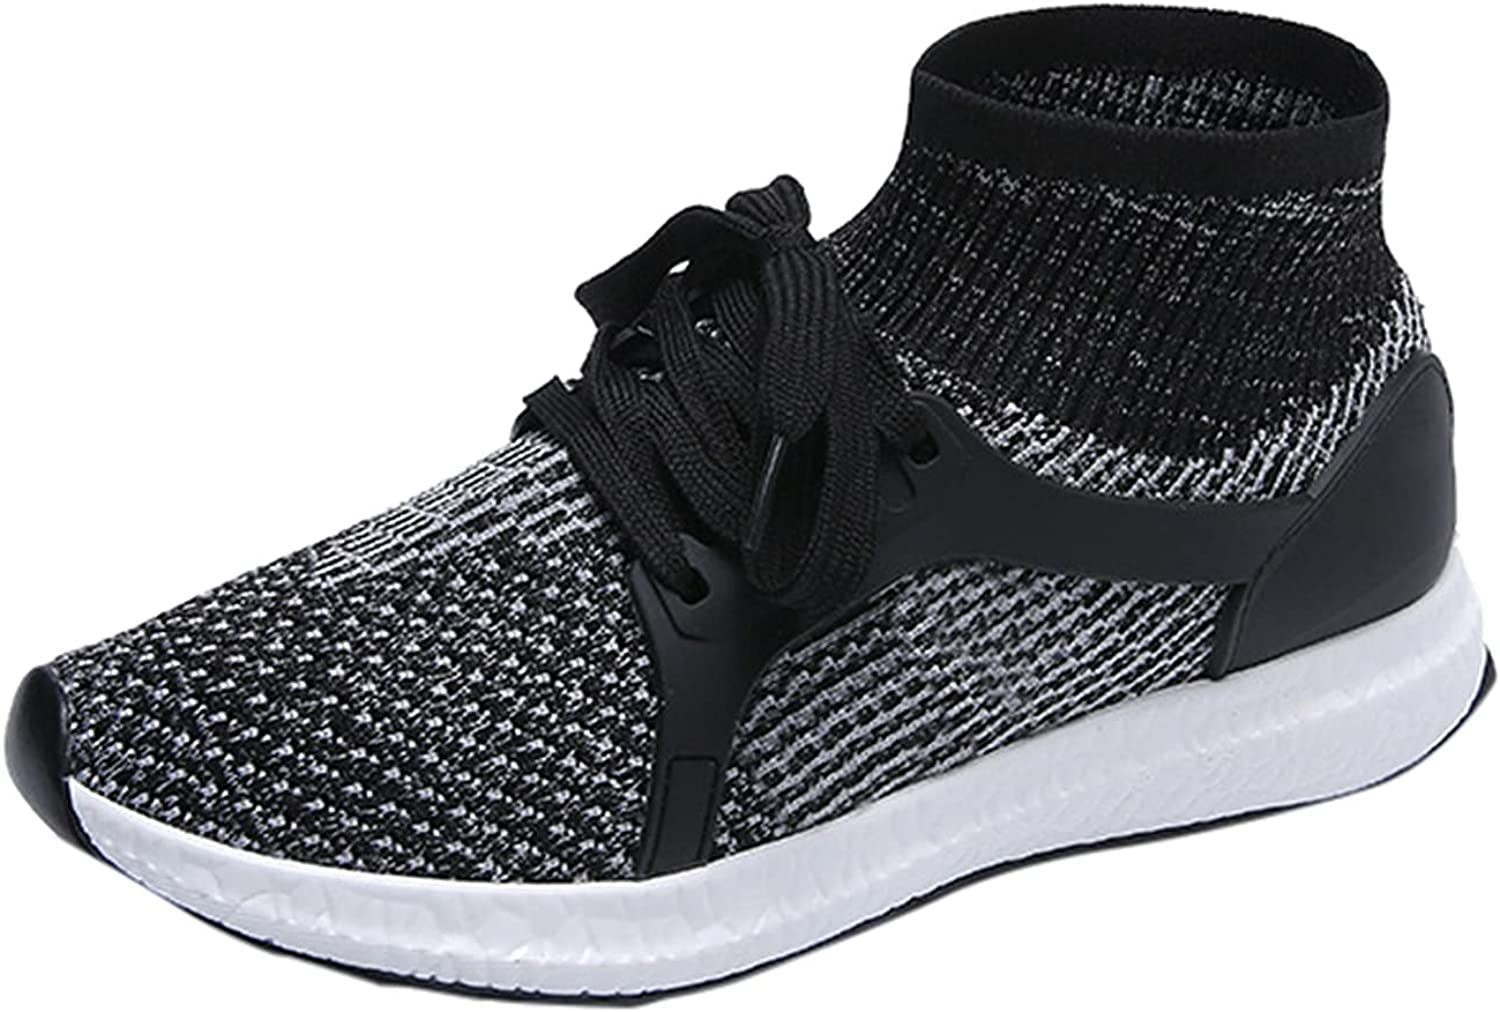 Sneakers for Women Walking Wedges Slip-on Casual Shoes Max 50% OFF Ranking TOP16